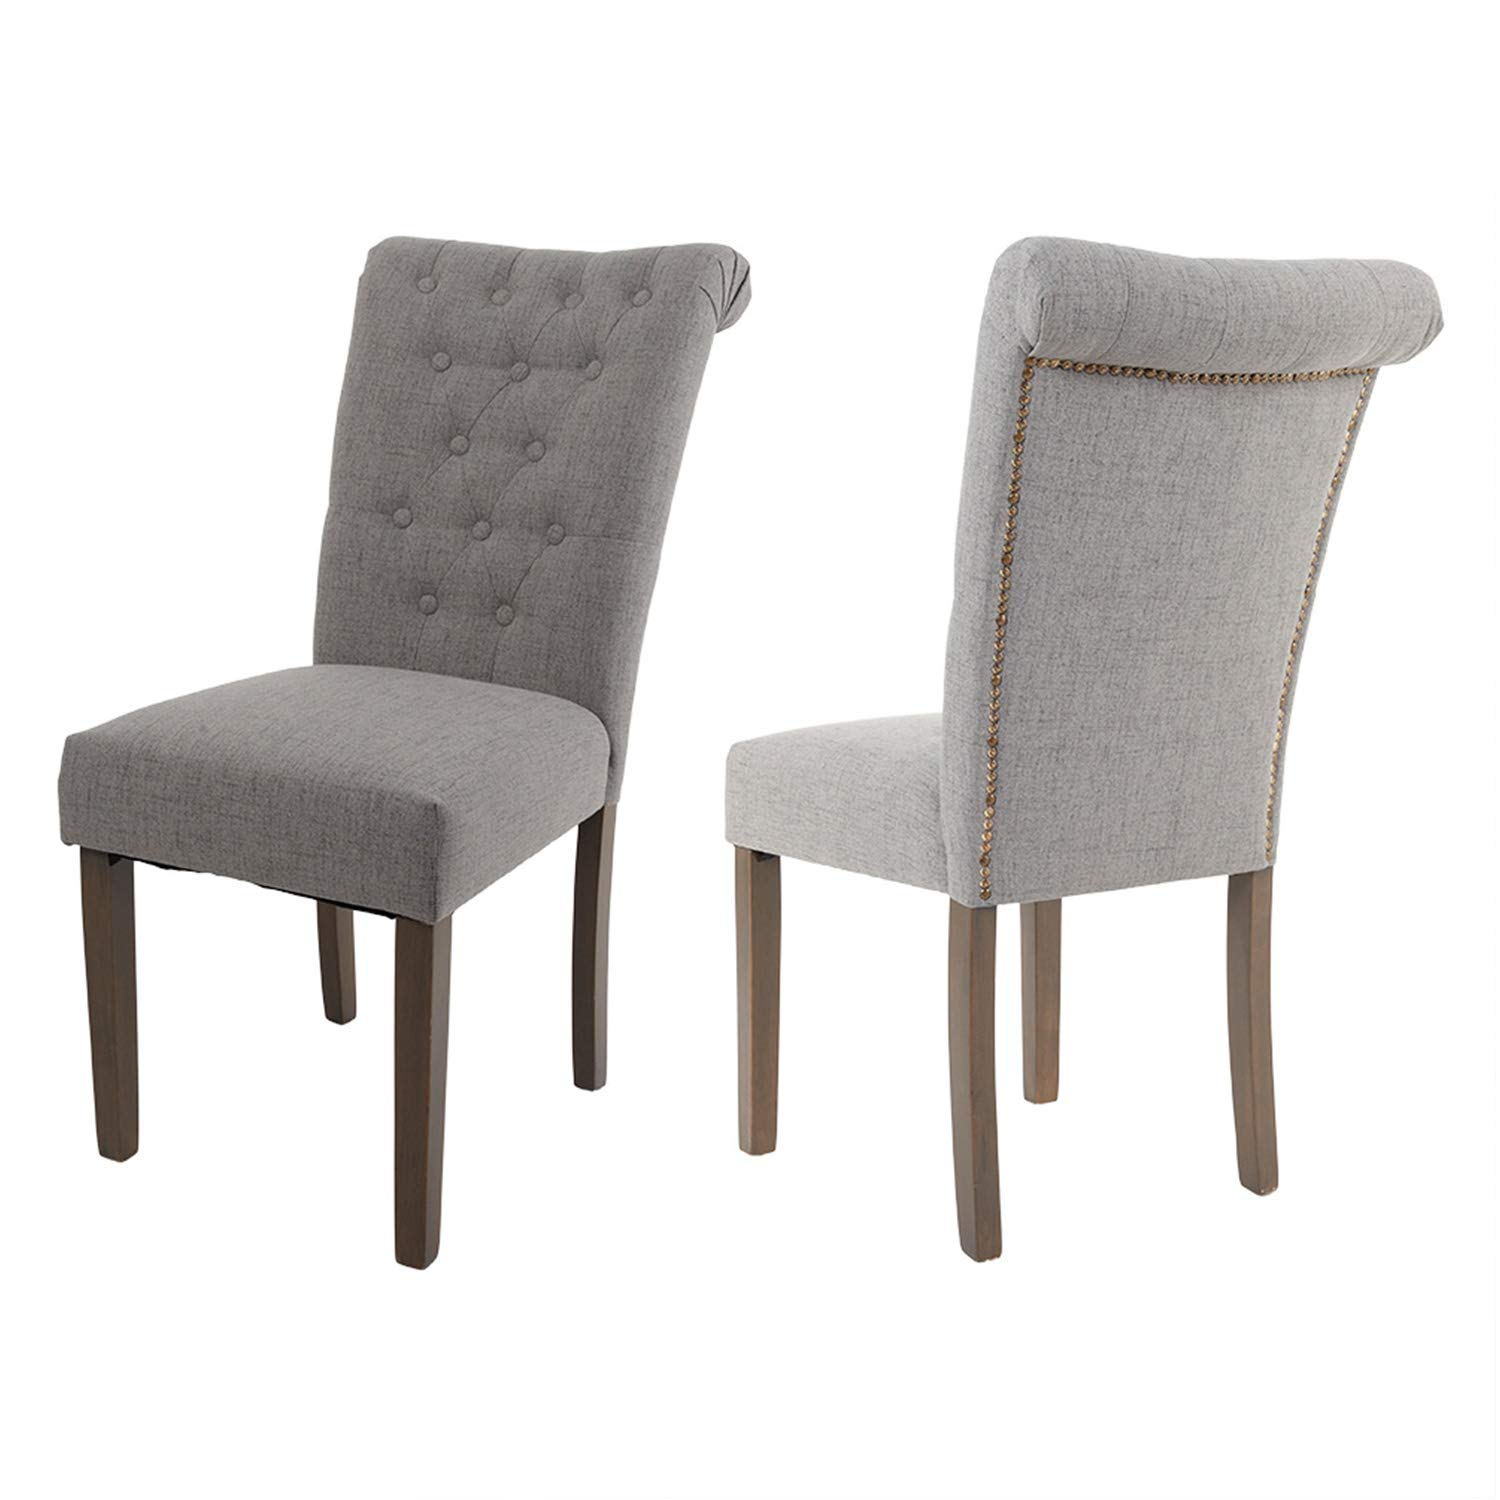 Upholstered Dining Chairs Parson Light Wood